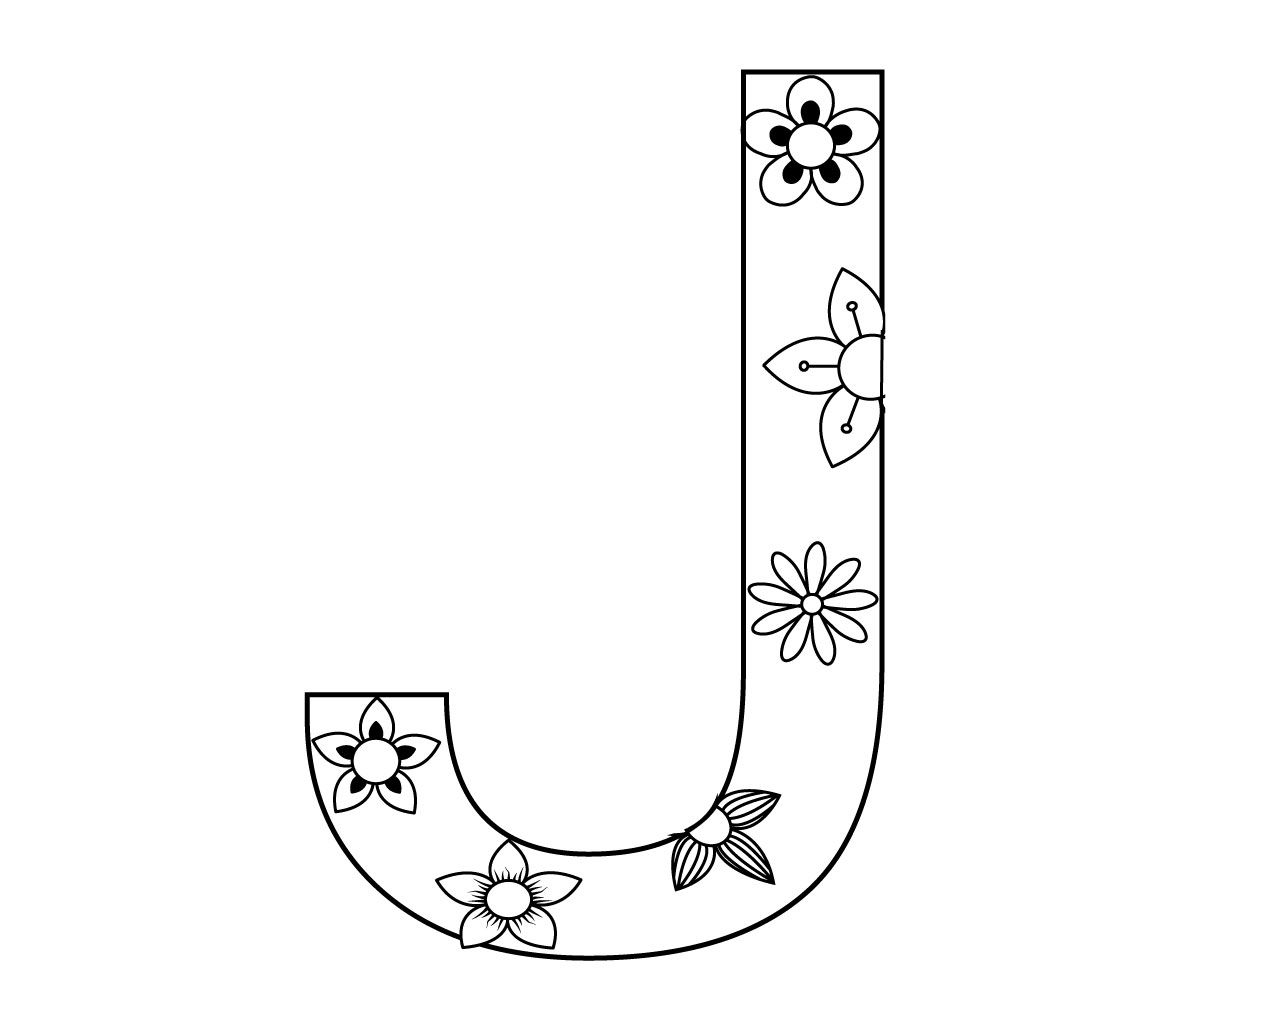 Free Printable Letter J Coloring Pages Printable Alphabet Letters Lettering Alphabet Coloring Pages